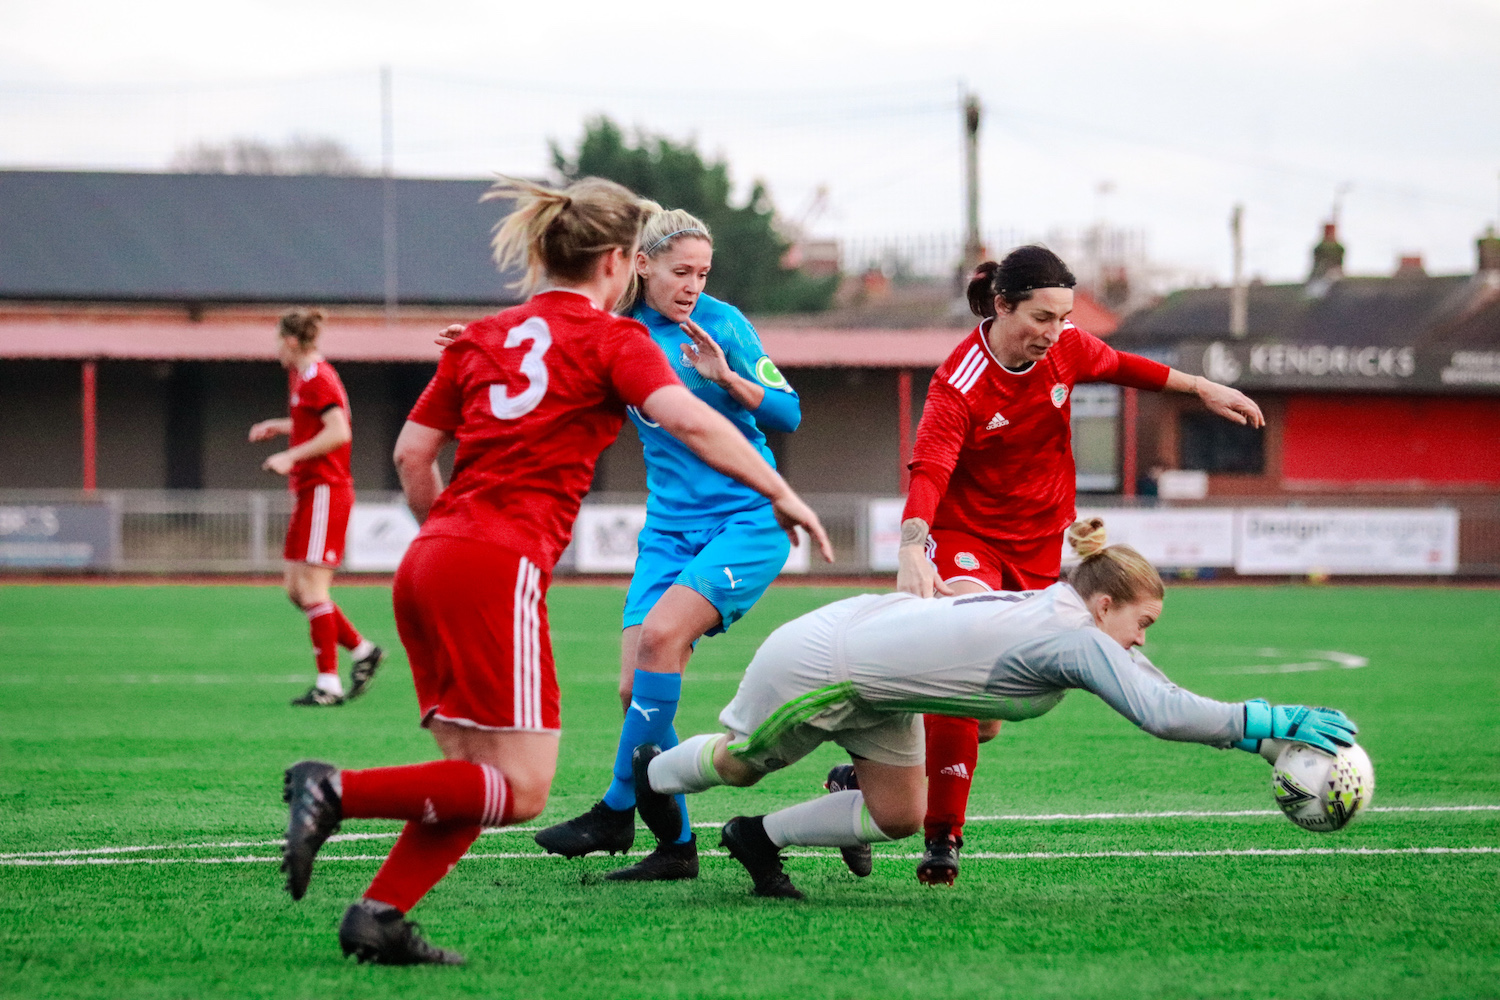 Read the full article - Worthing bow out the cup to higher league Billericay